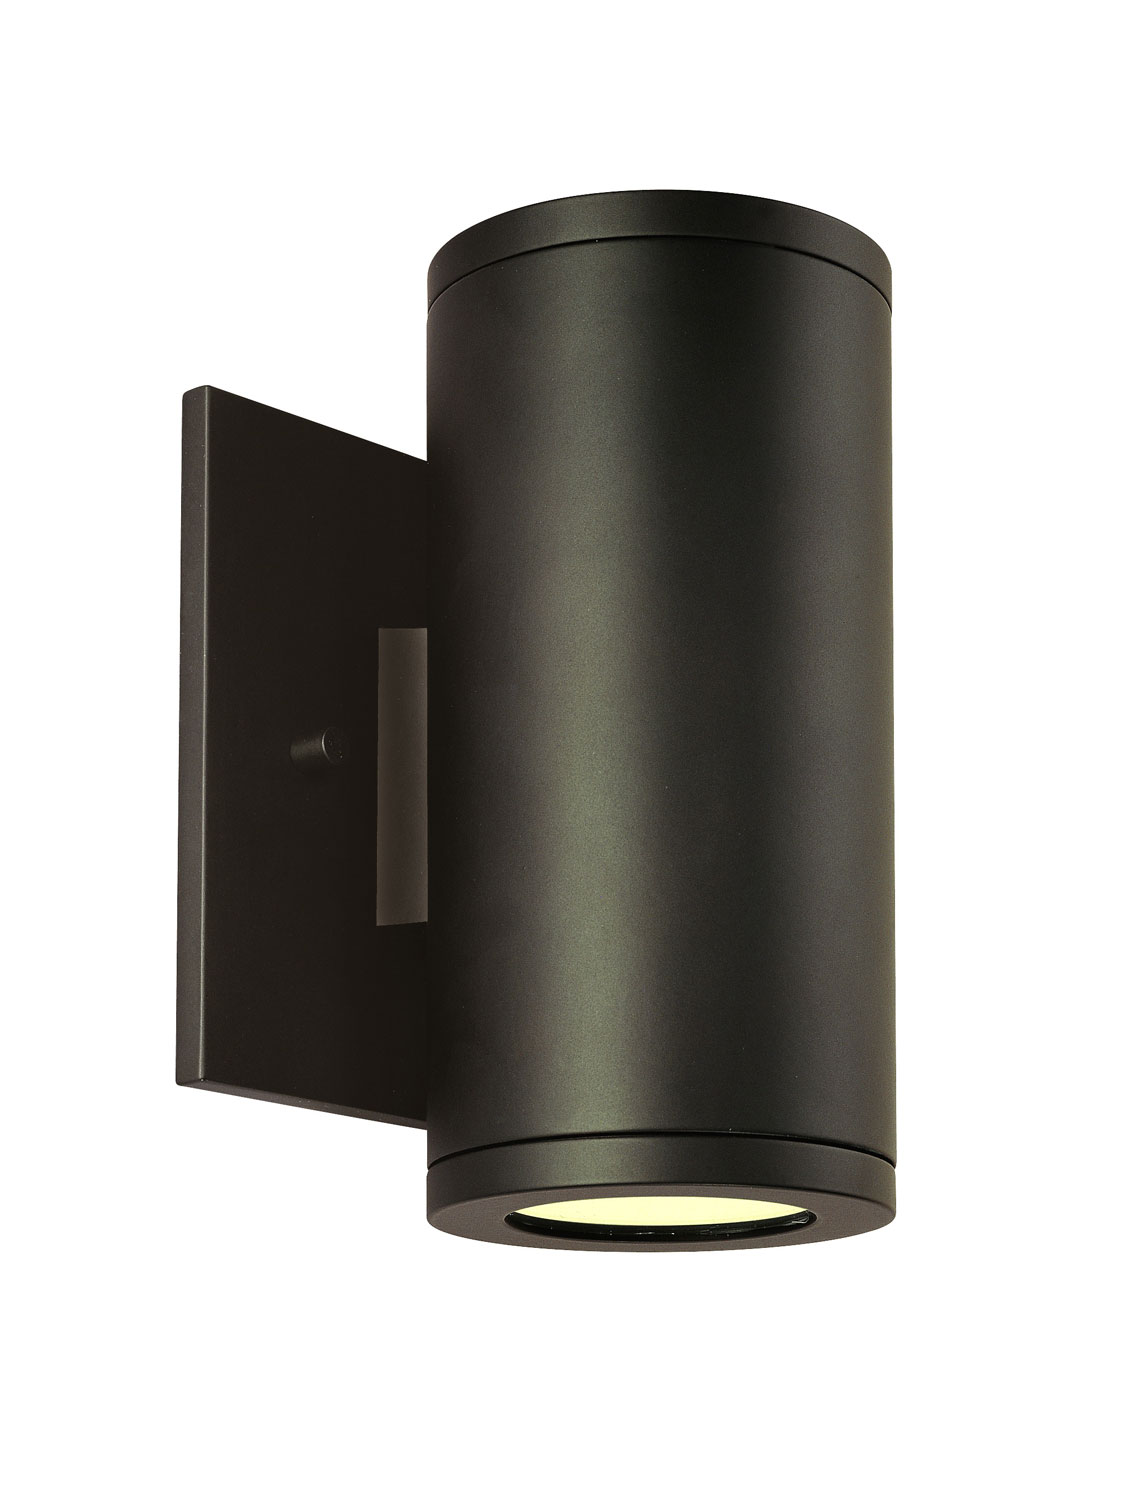 Add Decor to Your Outdoor Using Wall Mounted Light Fixtures ...